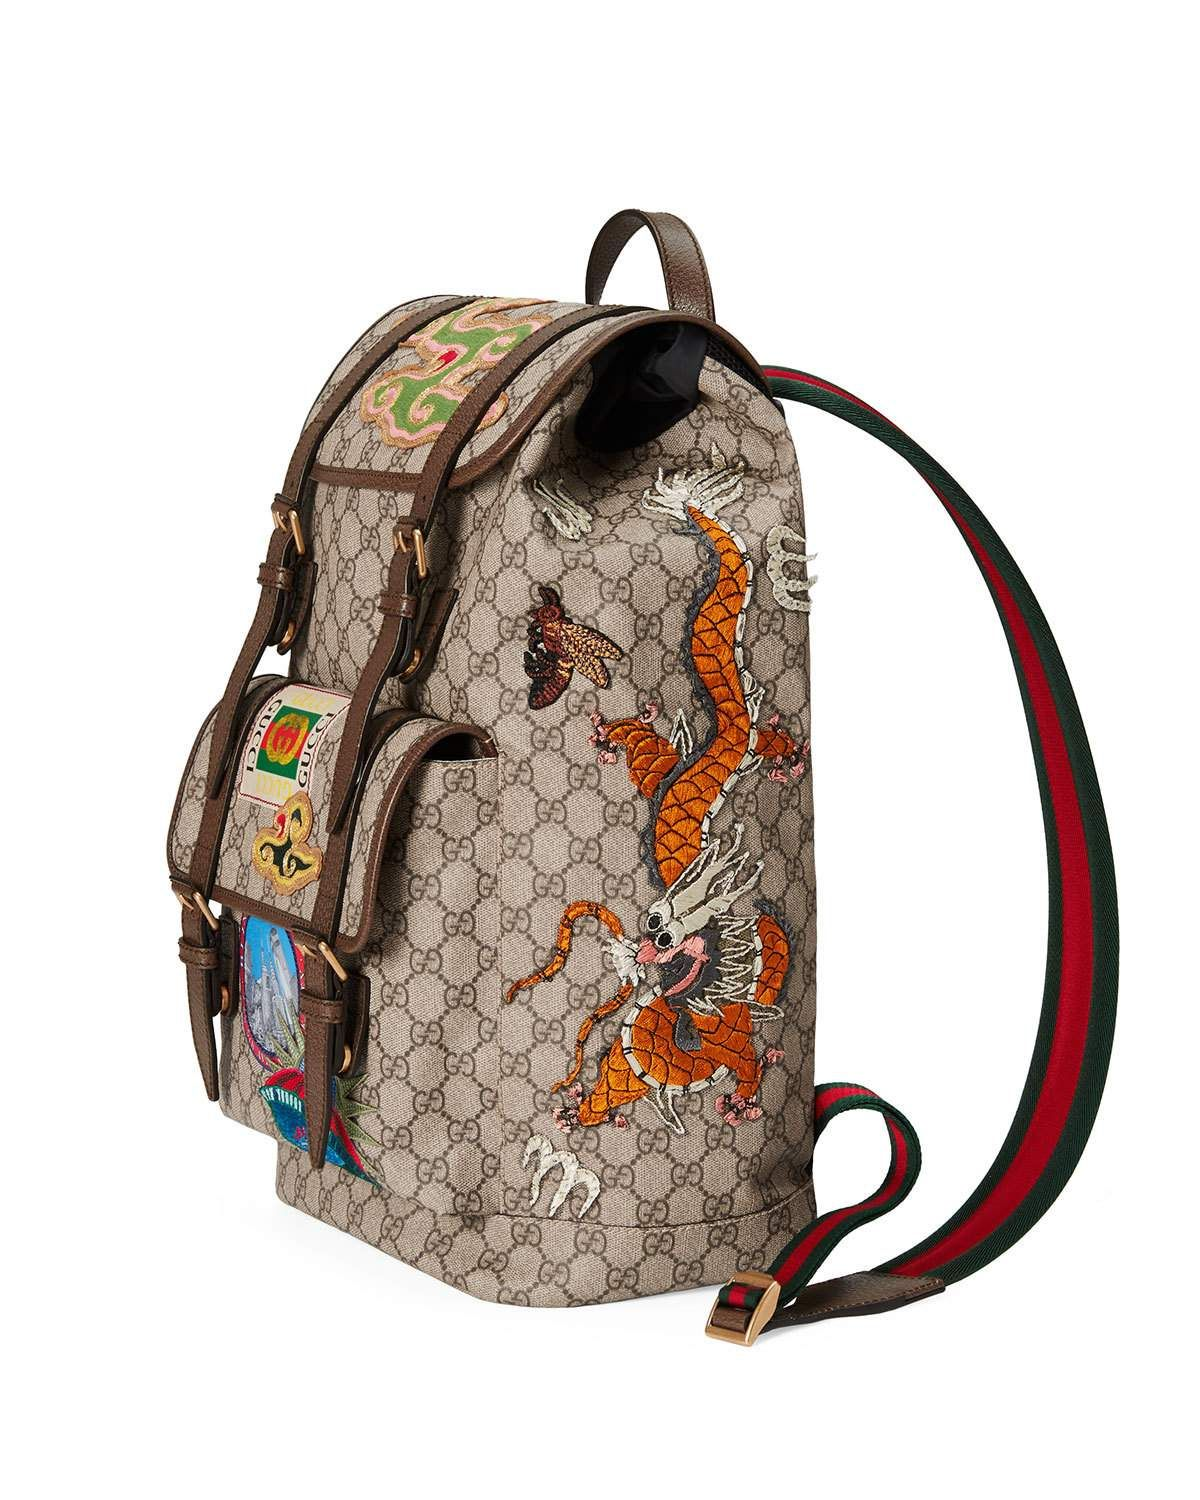 Gucci Courier Soft GG Supreme Backpack   Products   Pinterest ... 1cfc5e39308